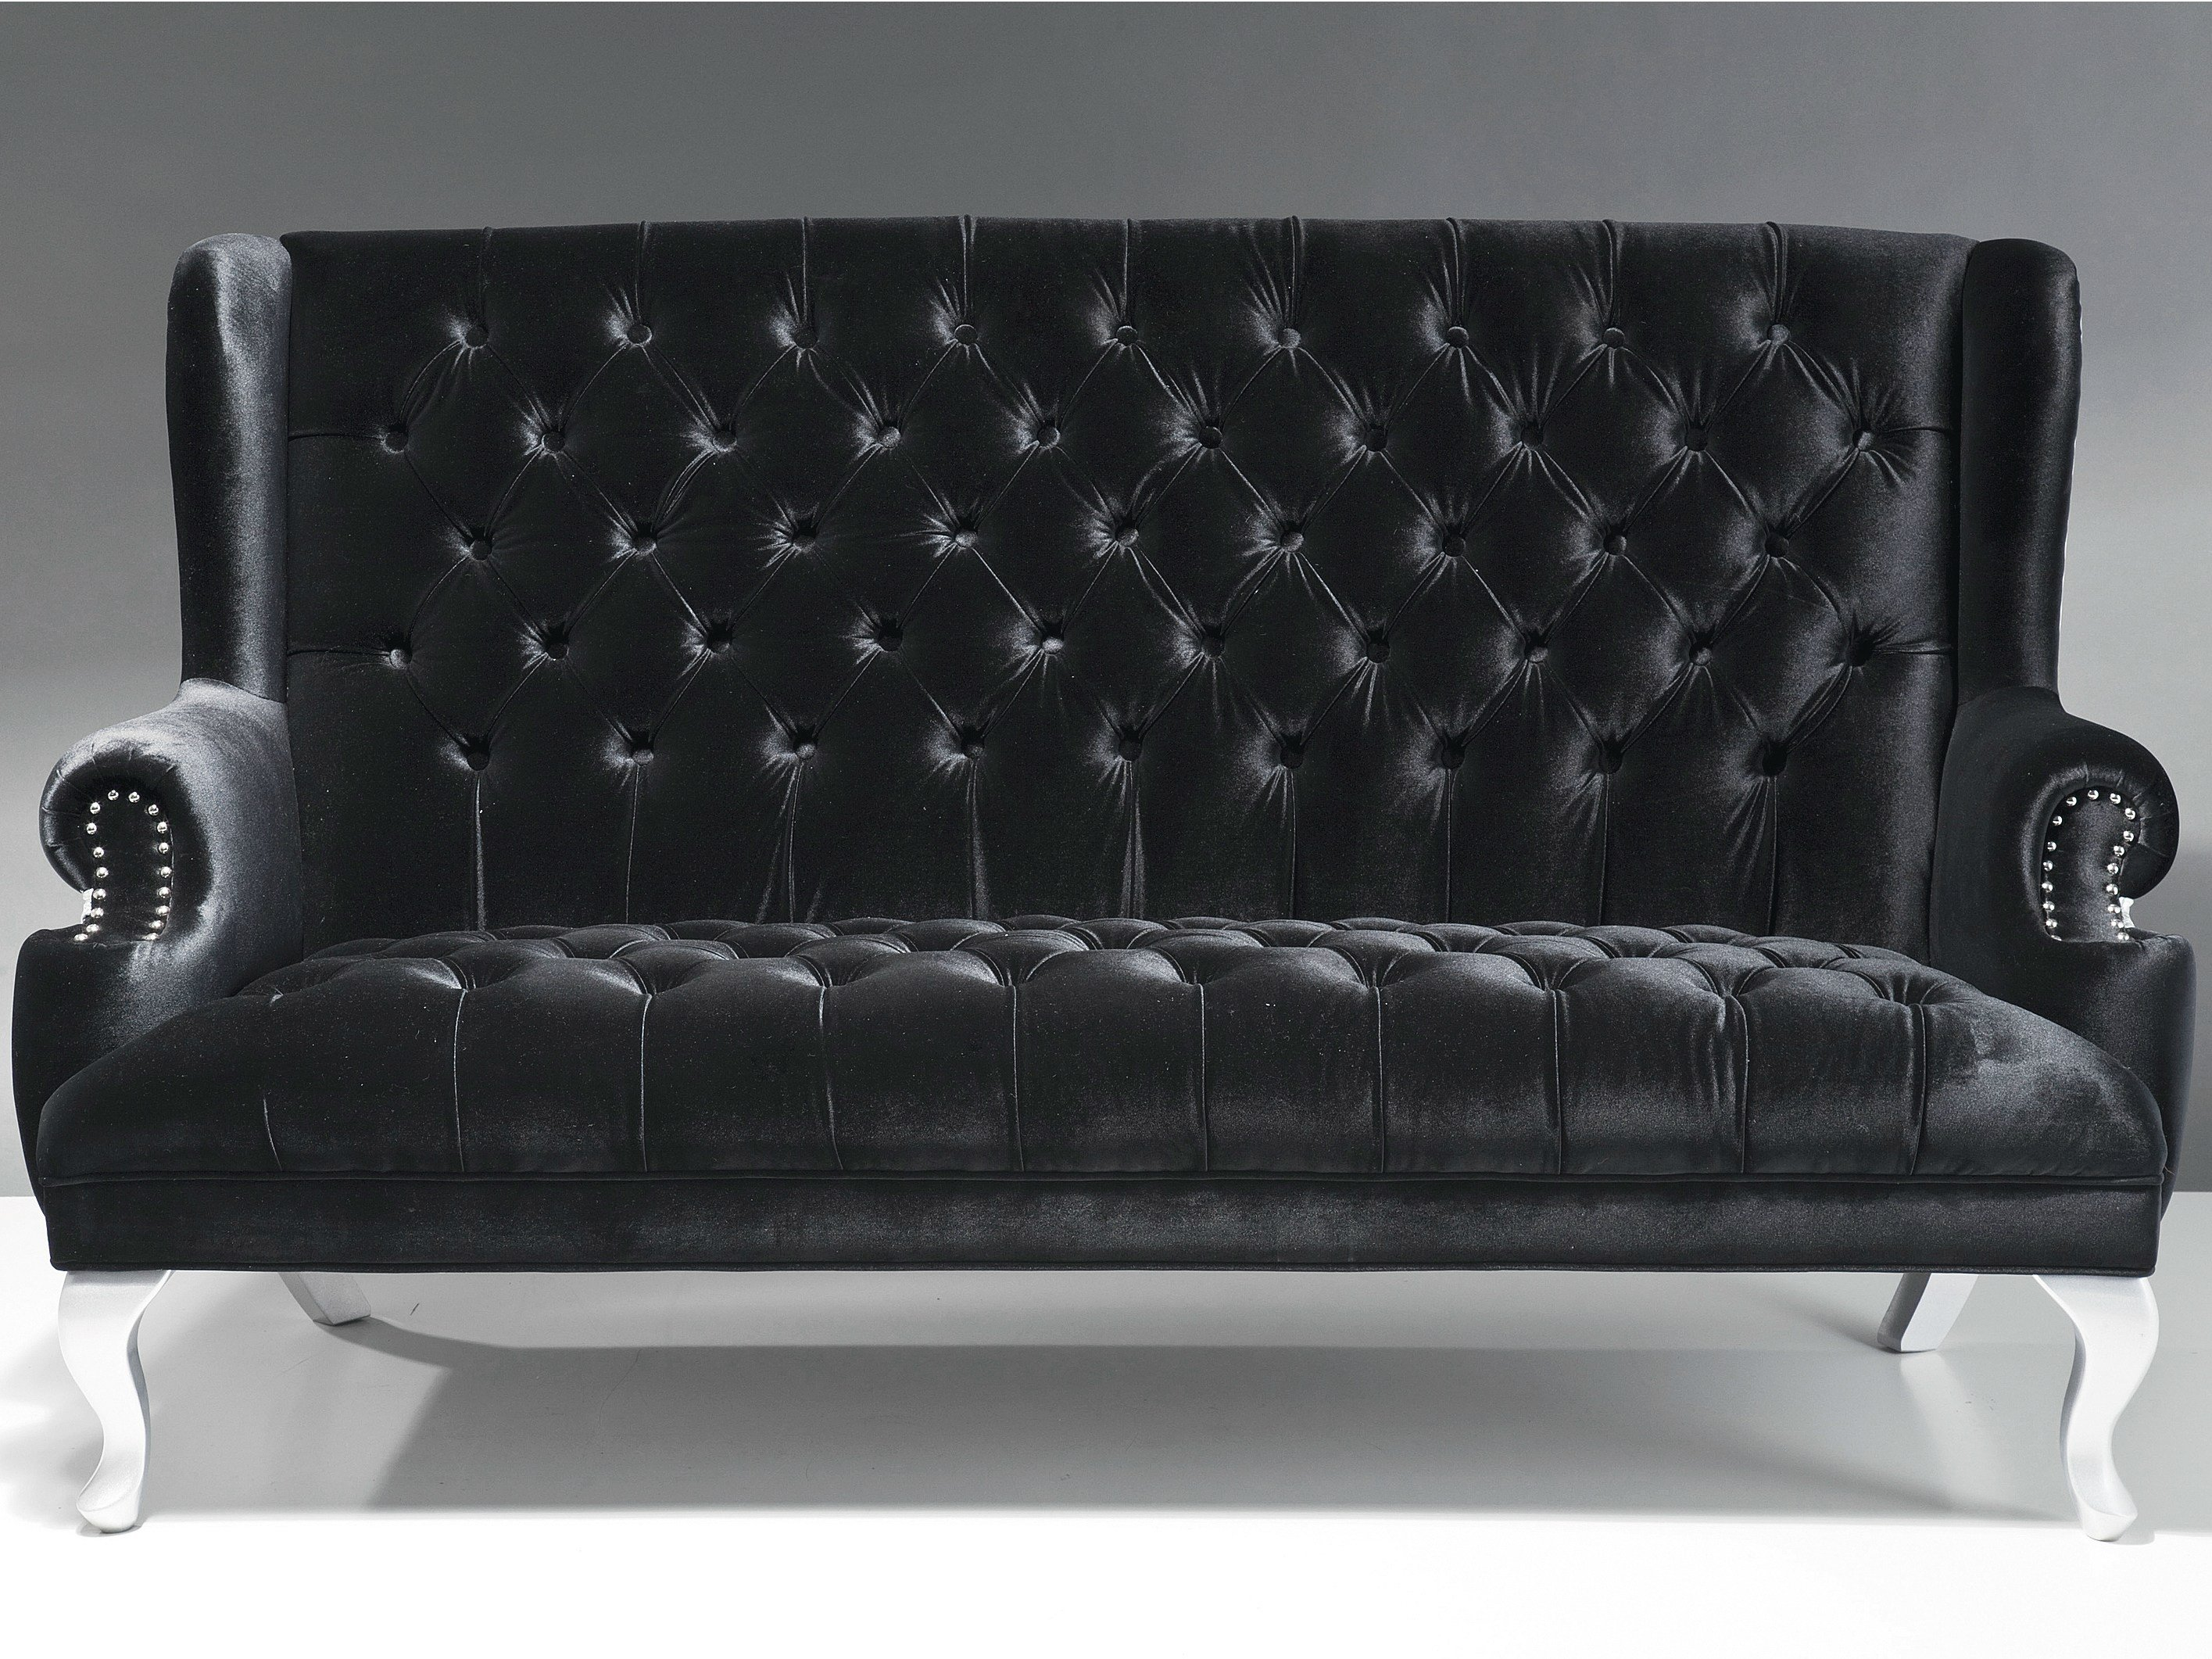 barocco sofa by kare design. Black Bedroom Furniture Sets. Home Design Ideas